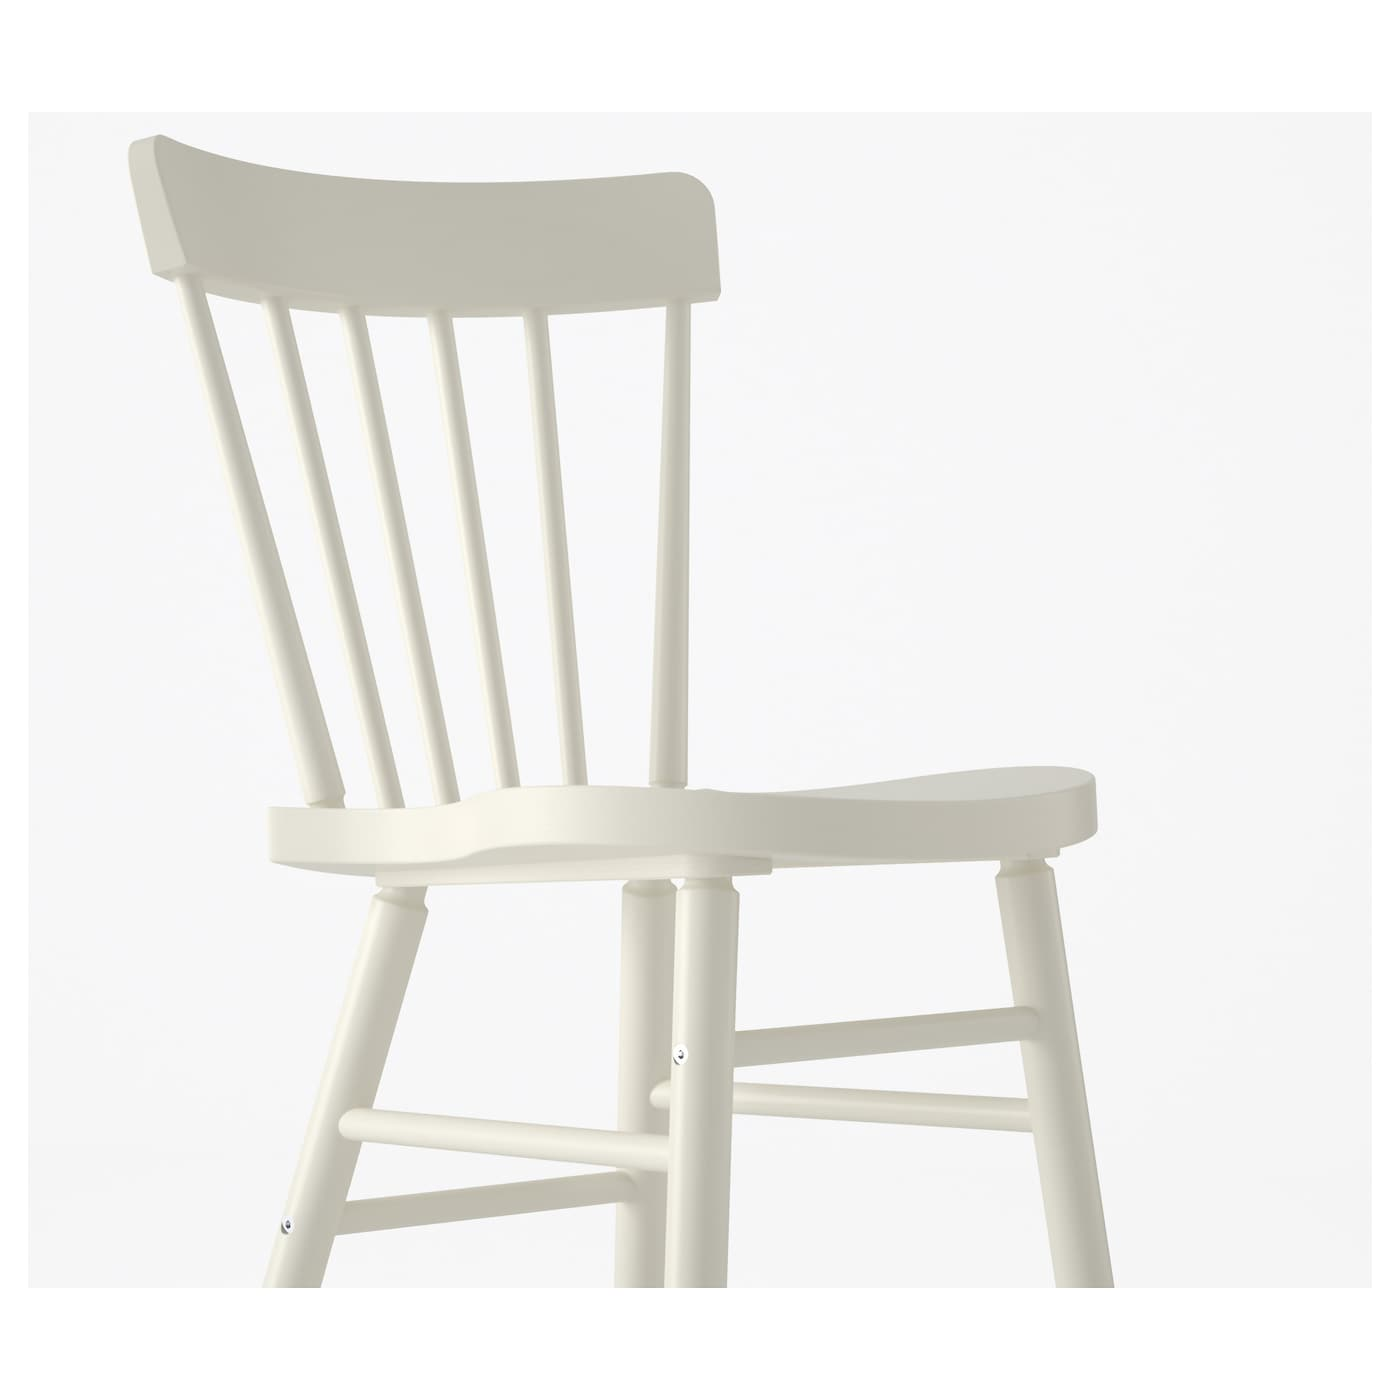 Good Interesting Chair You Sit Comfortably Thanks To The